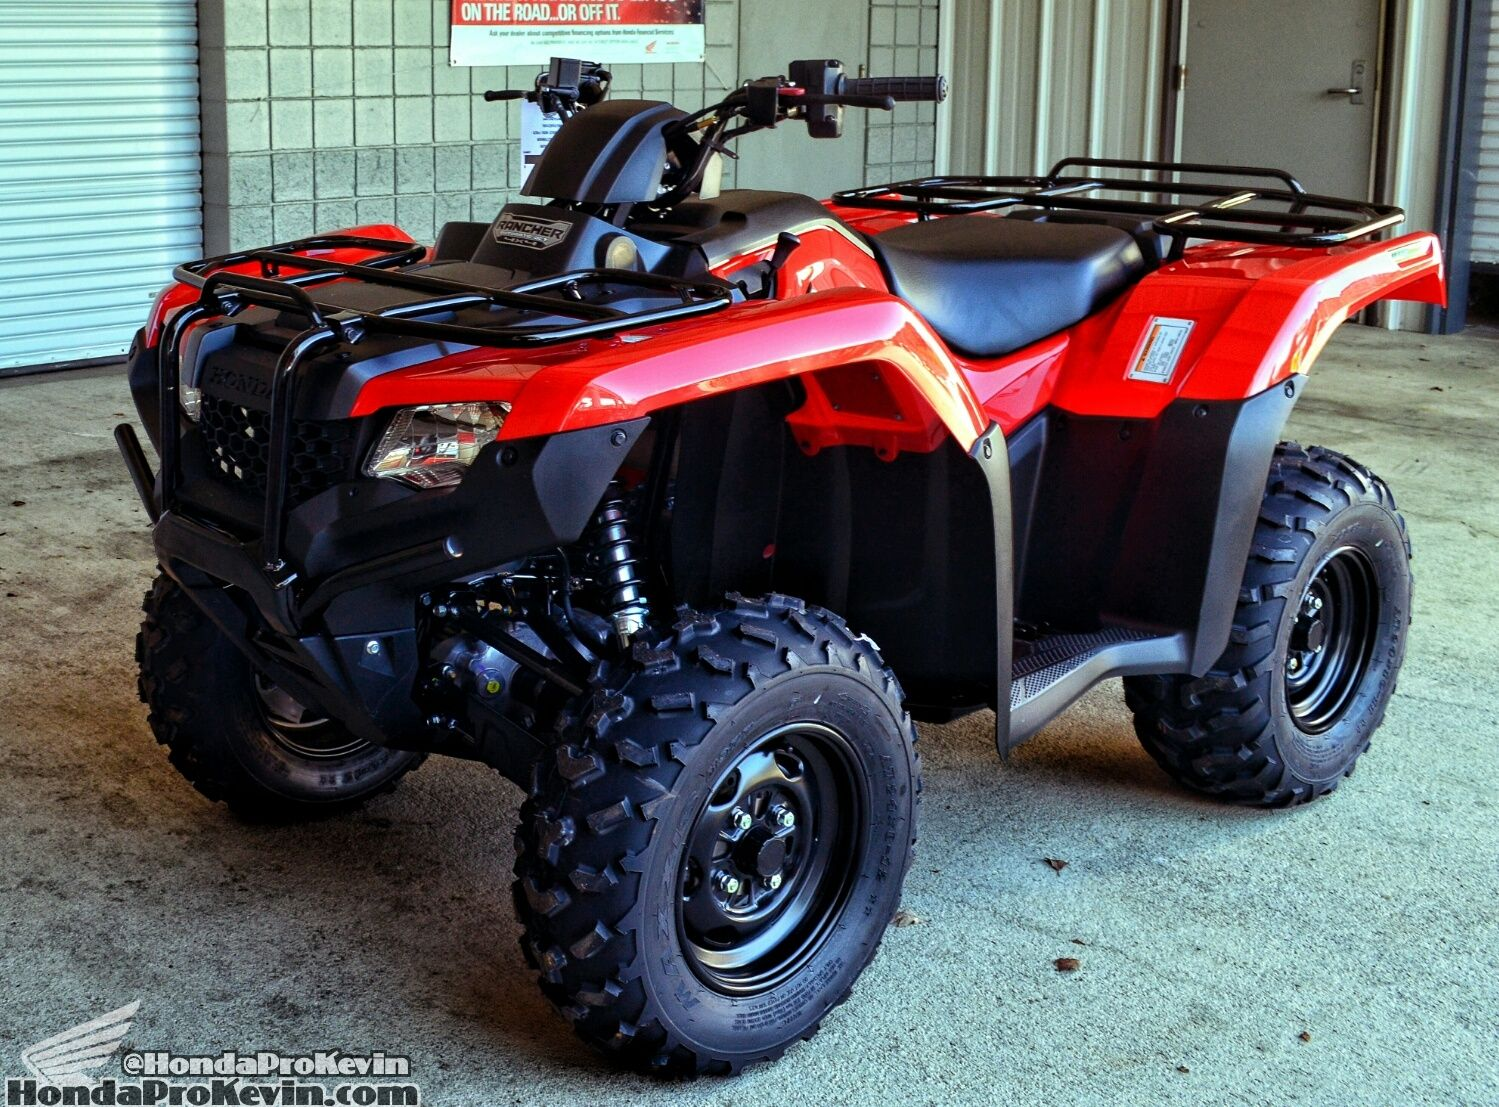 2016 Honda Rancher 420 Atv Ride Review Specs 4x4 Four Wheeler Trx420